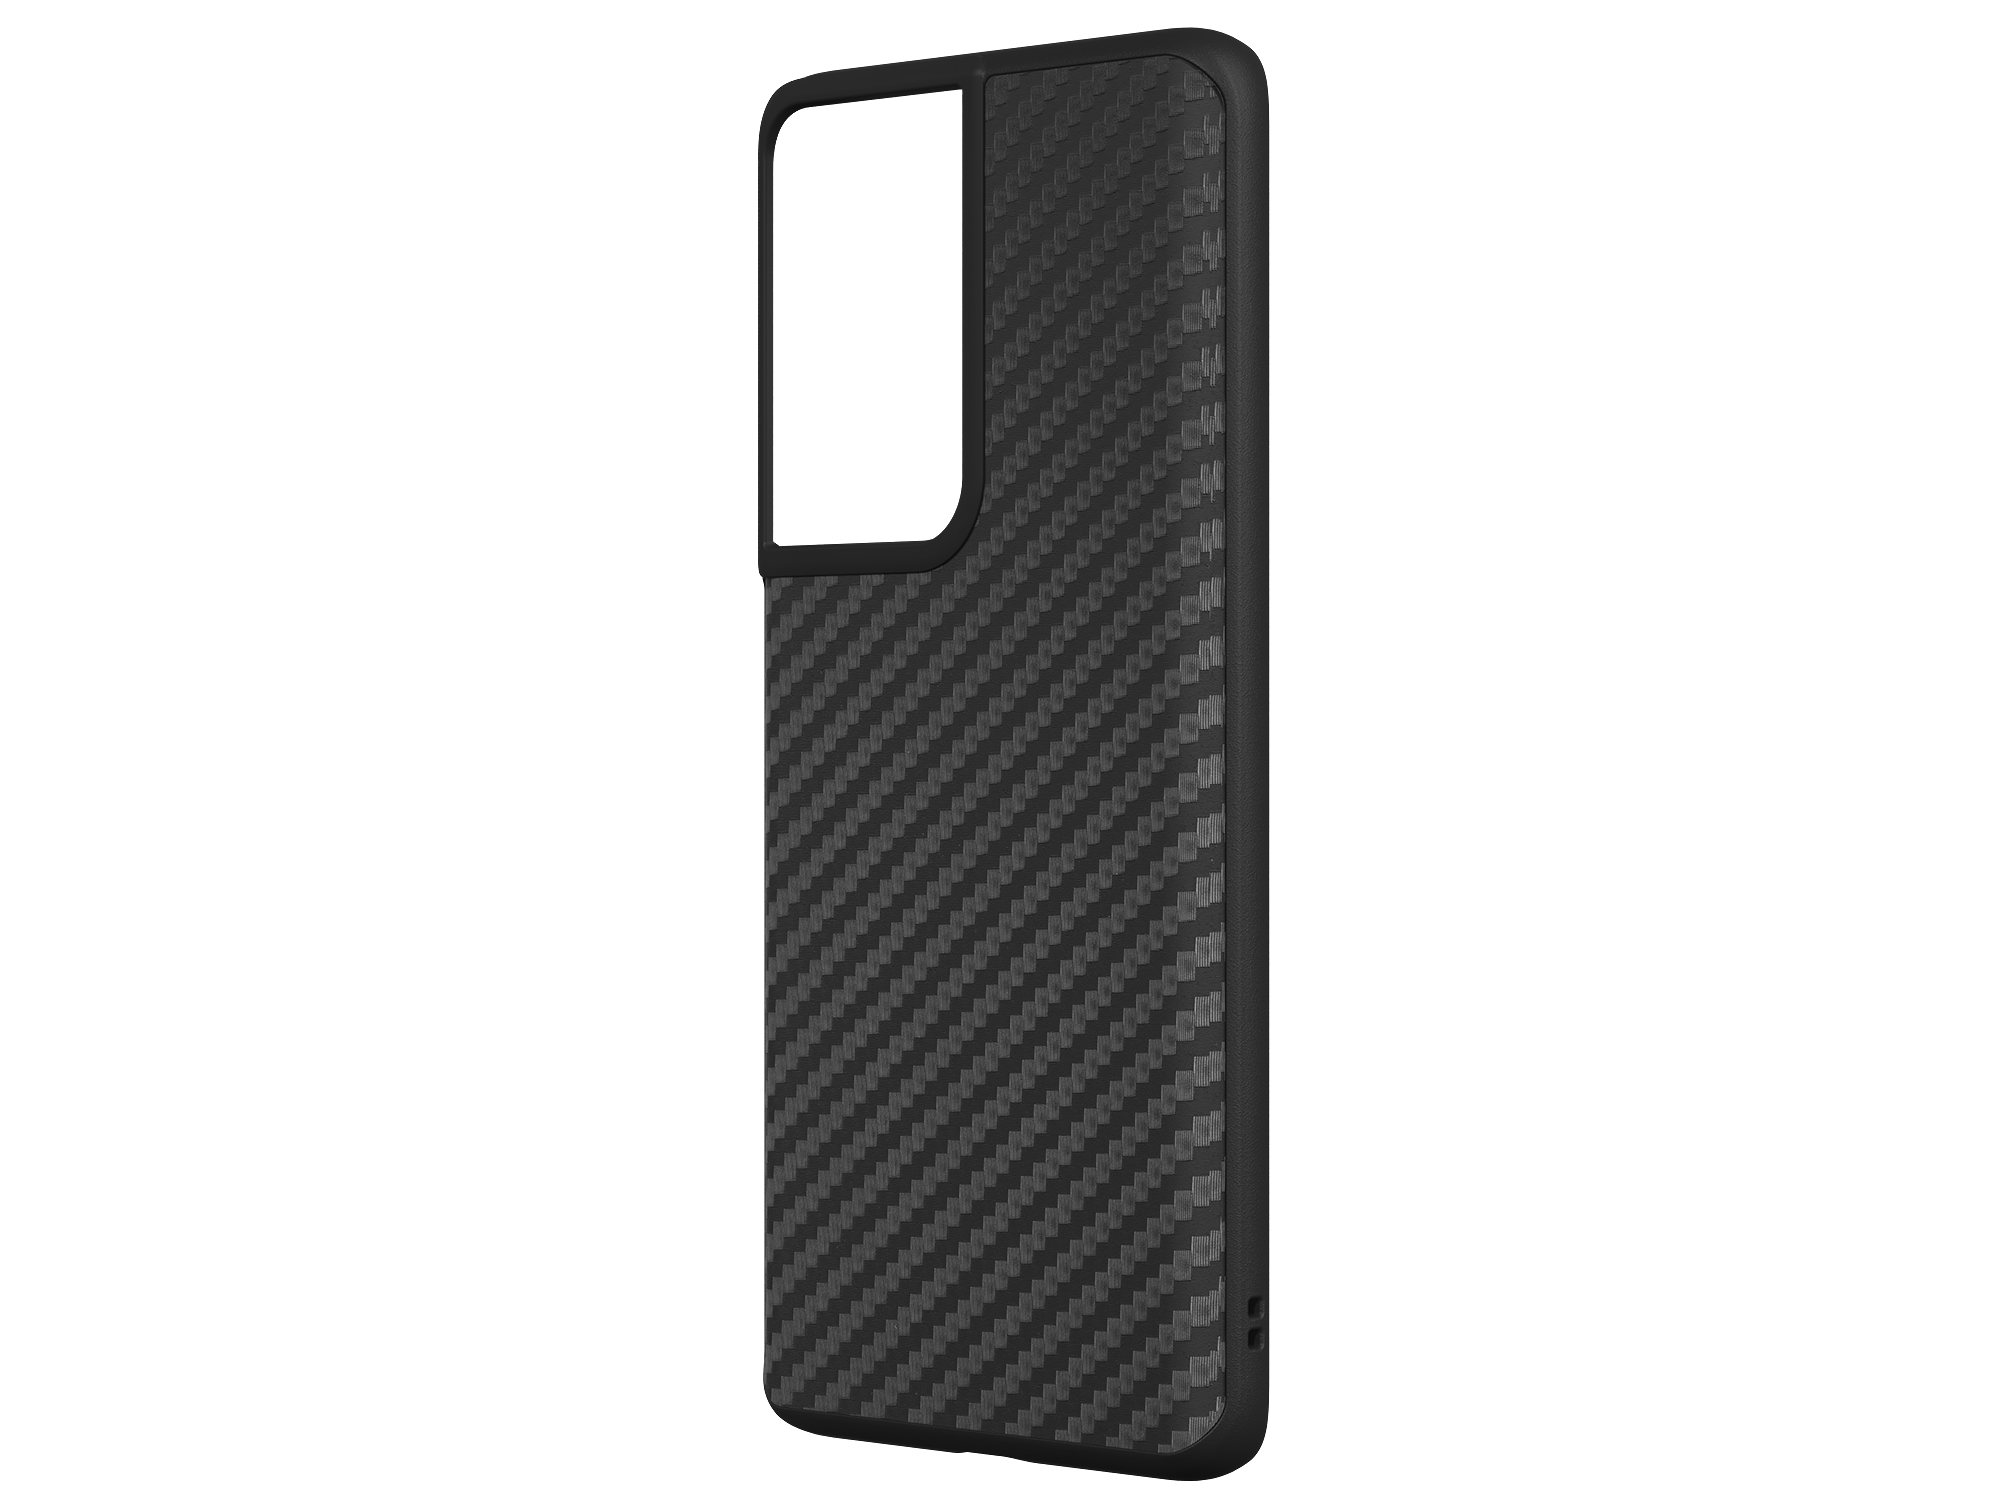 RhinoShield SolidSuit for Samsung Galaxy S21 Ultra